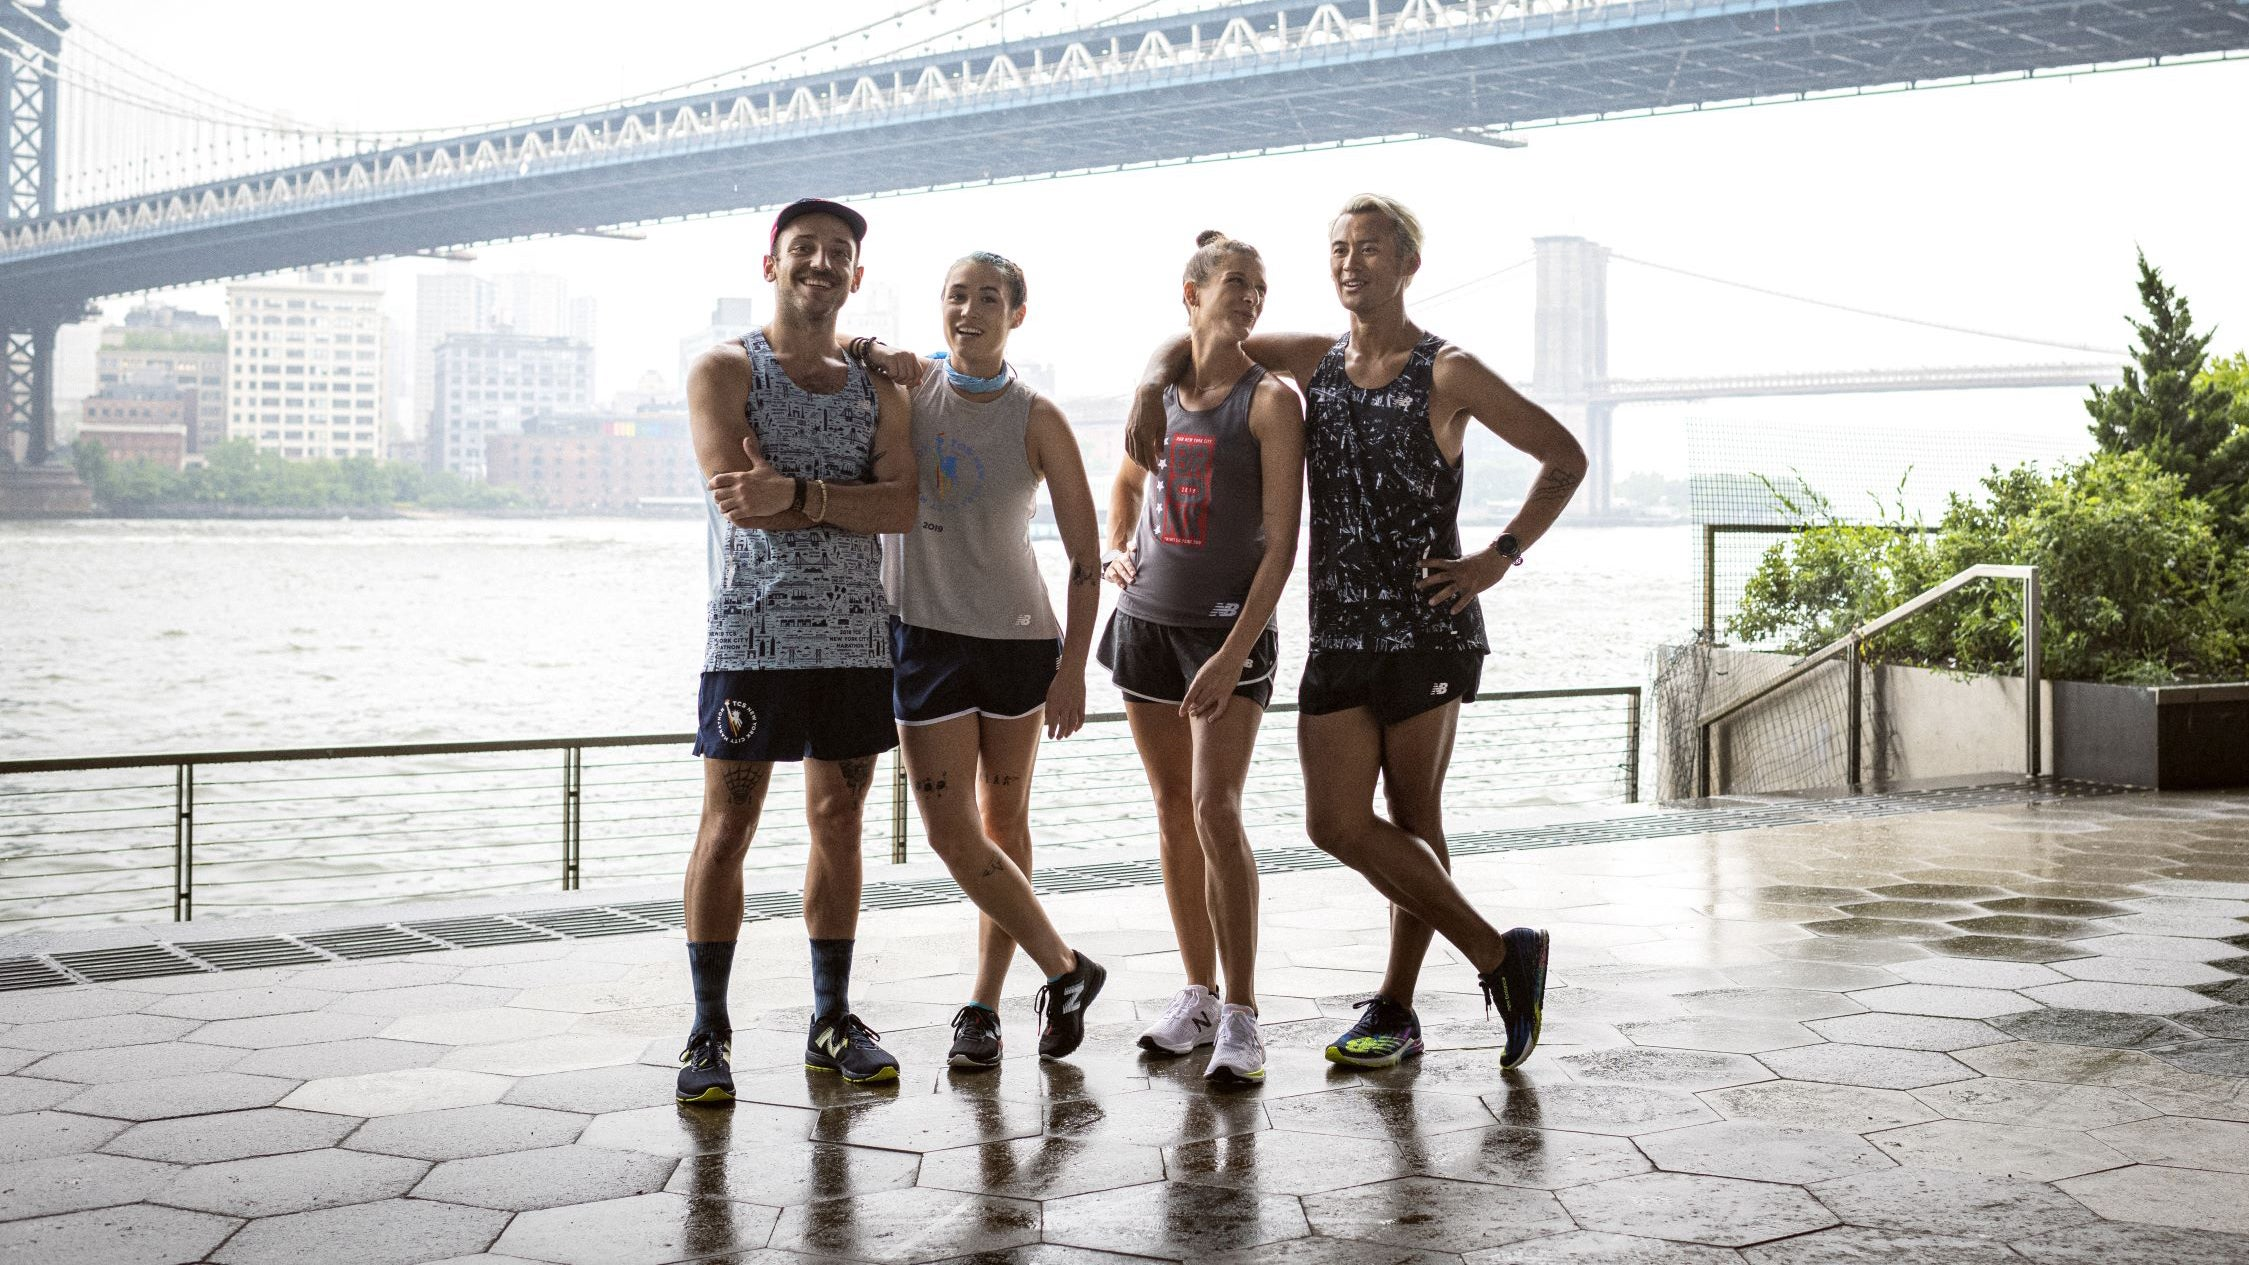 New Balance 2019 NYCM collection